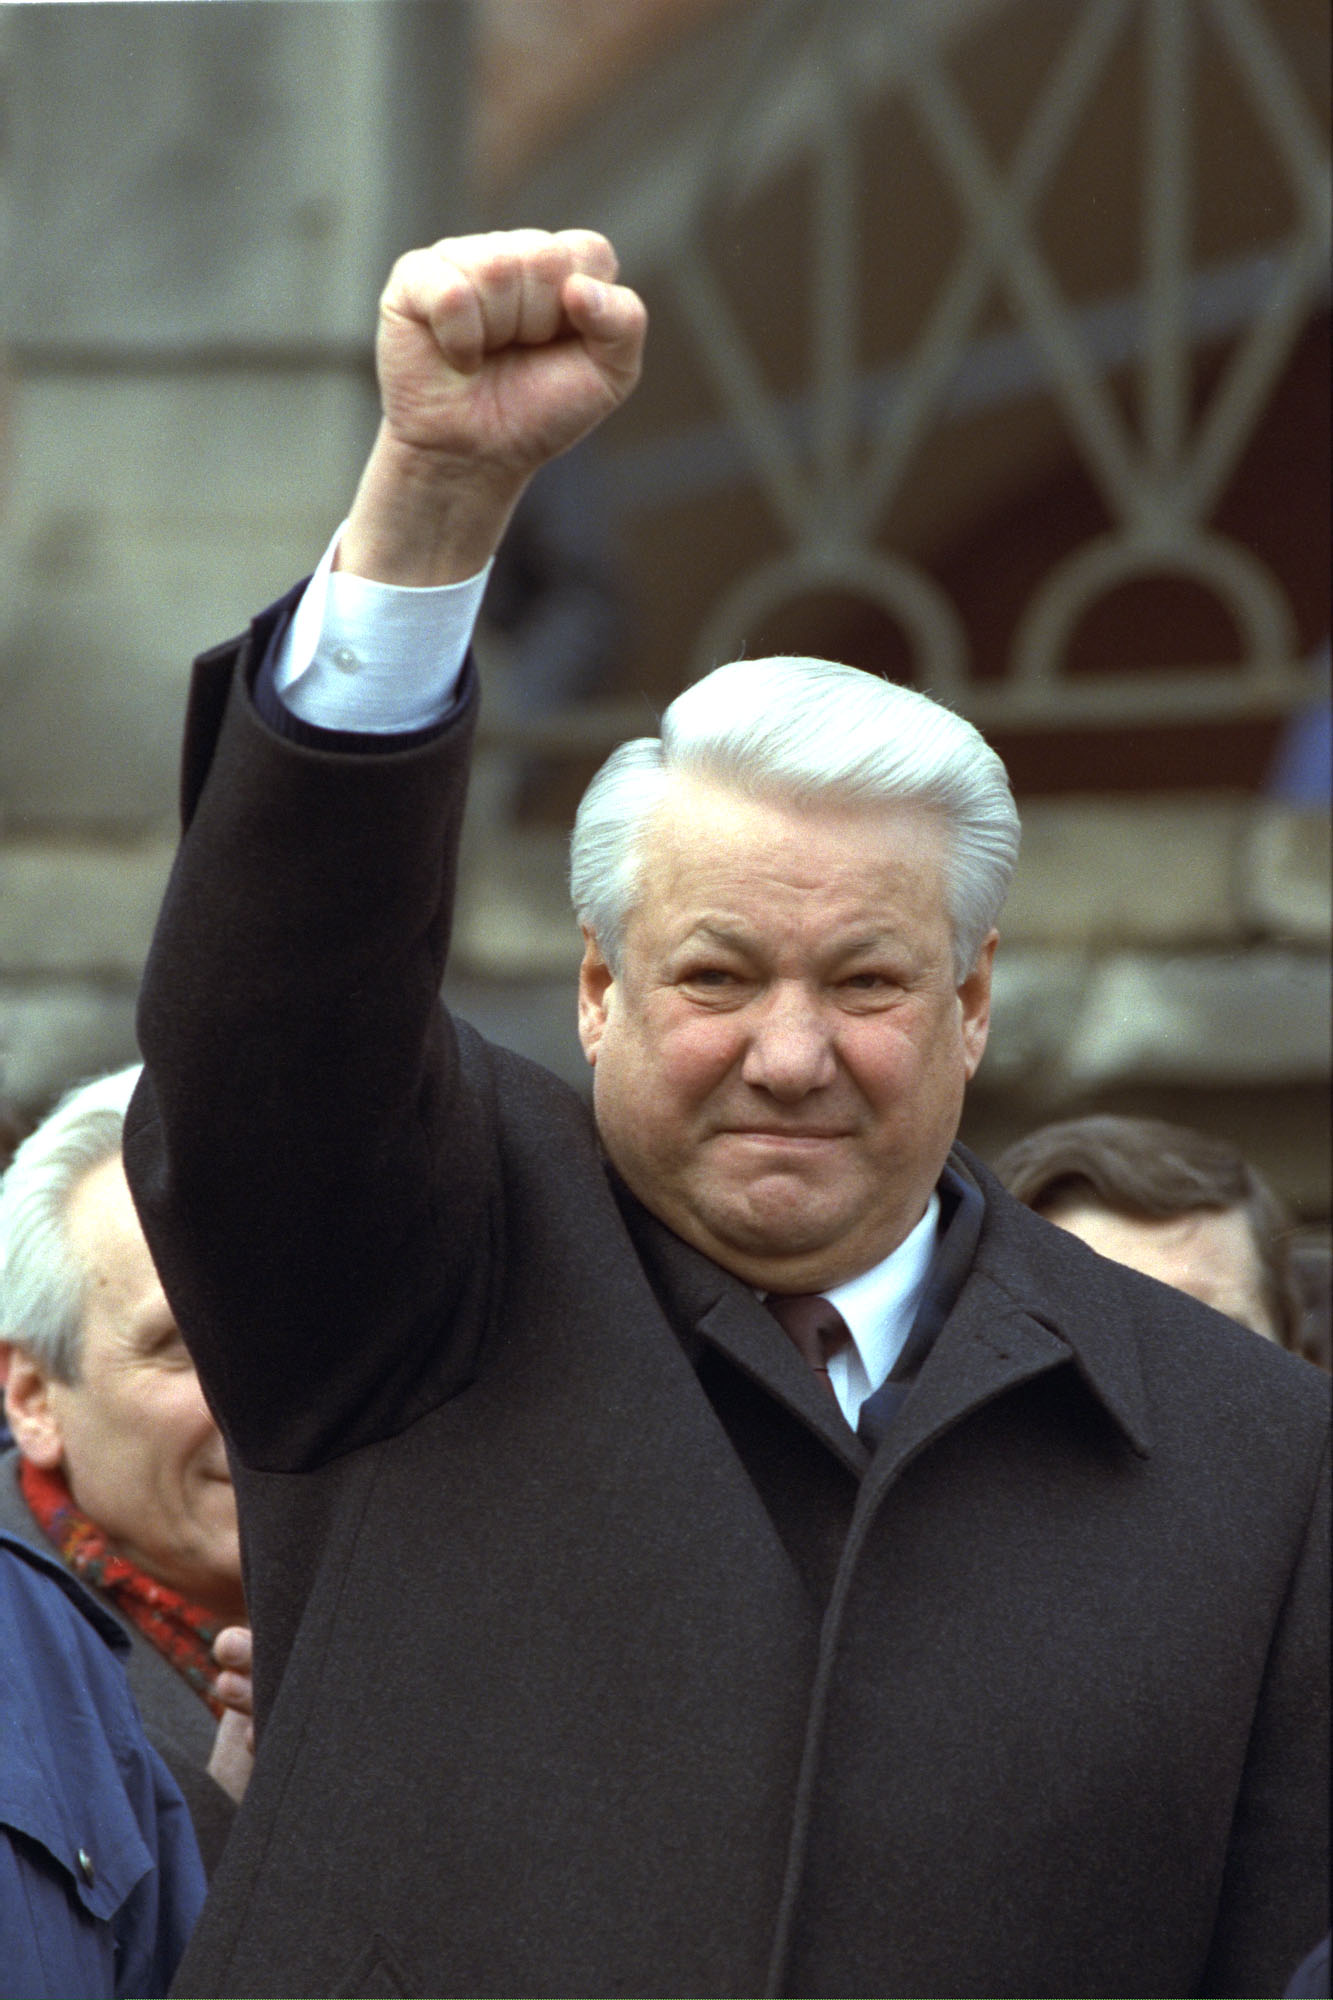 http://cdn.history.com/sites/2/2014/02/yeltsin.jpg